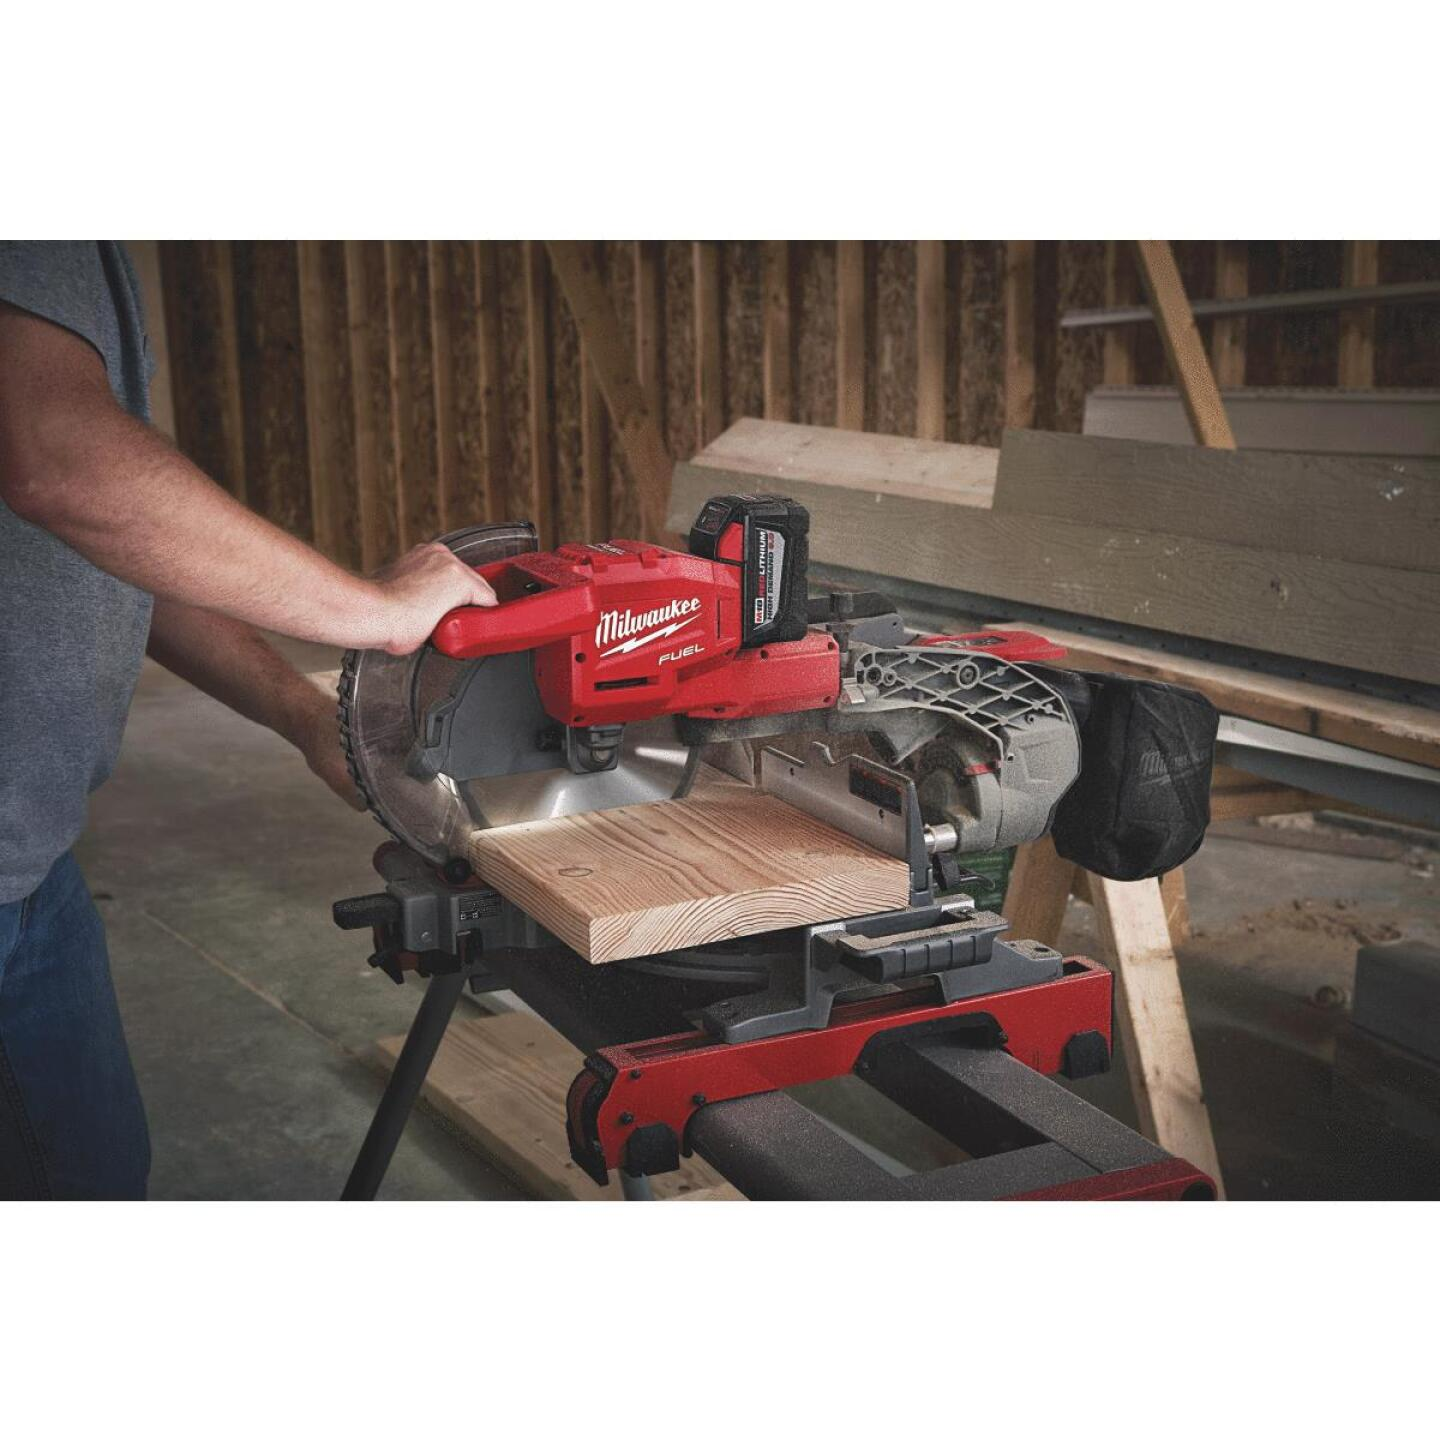 Milwaukee M18 FUEL 18-Volt Lithium-Ion Brushless Dual-Bevel Sliding Compound Cordless Miter Saw Kit Image 4